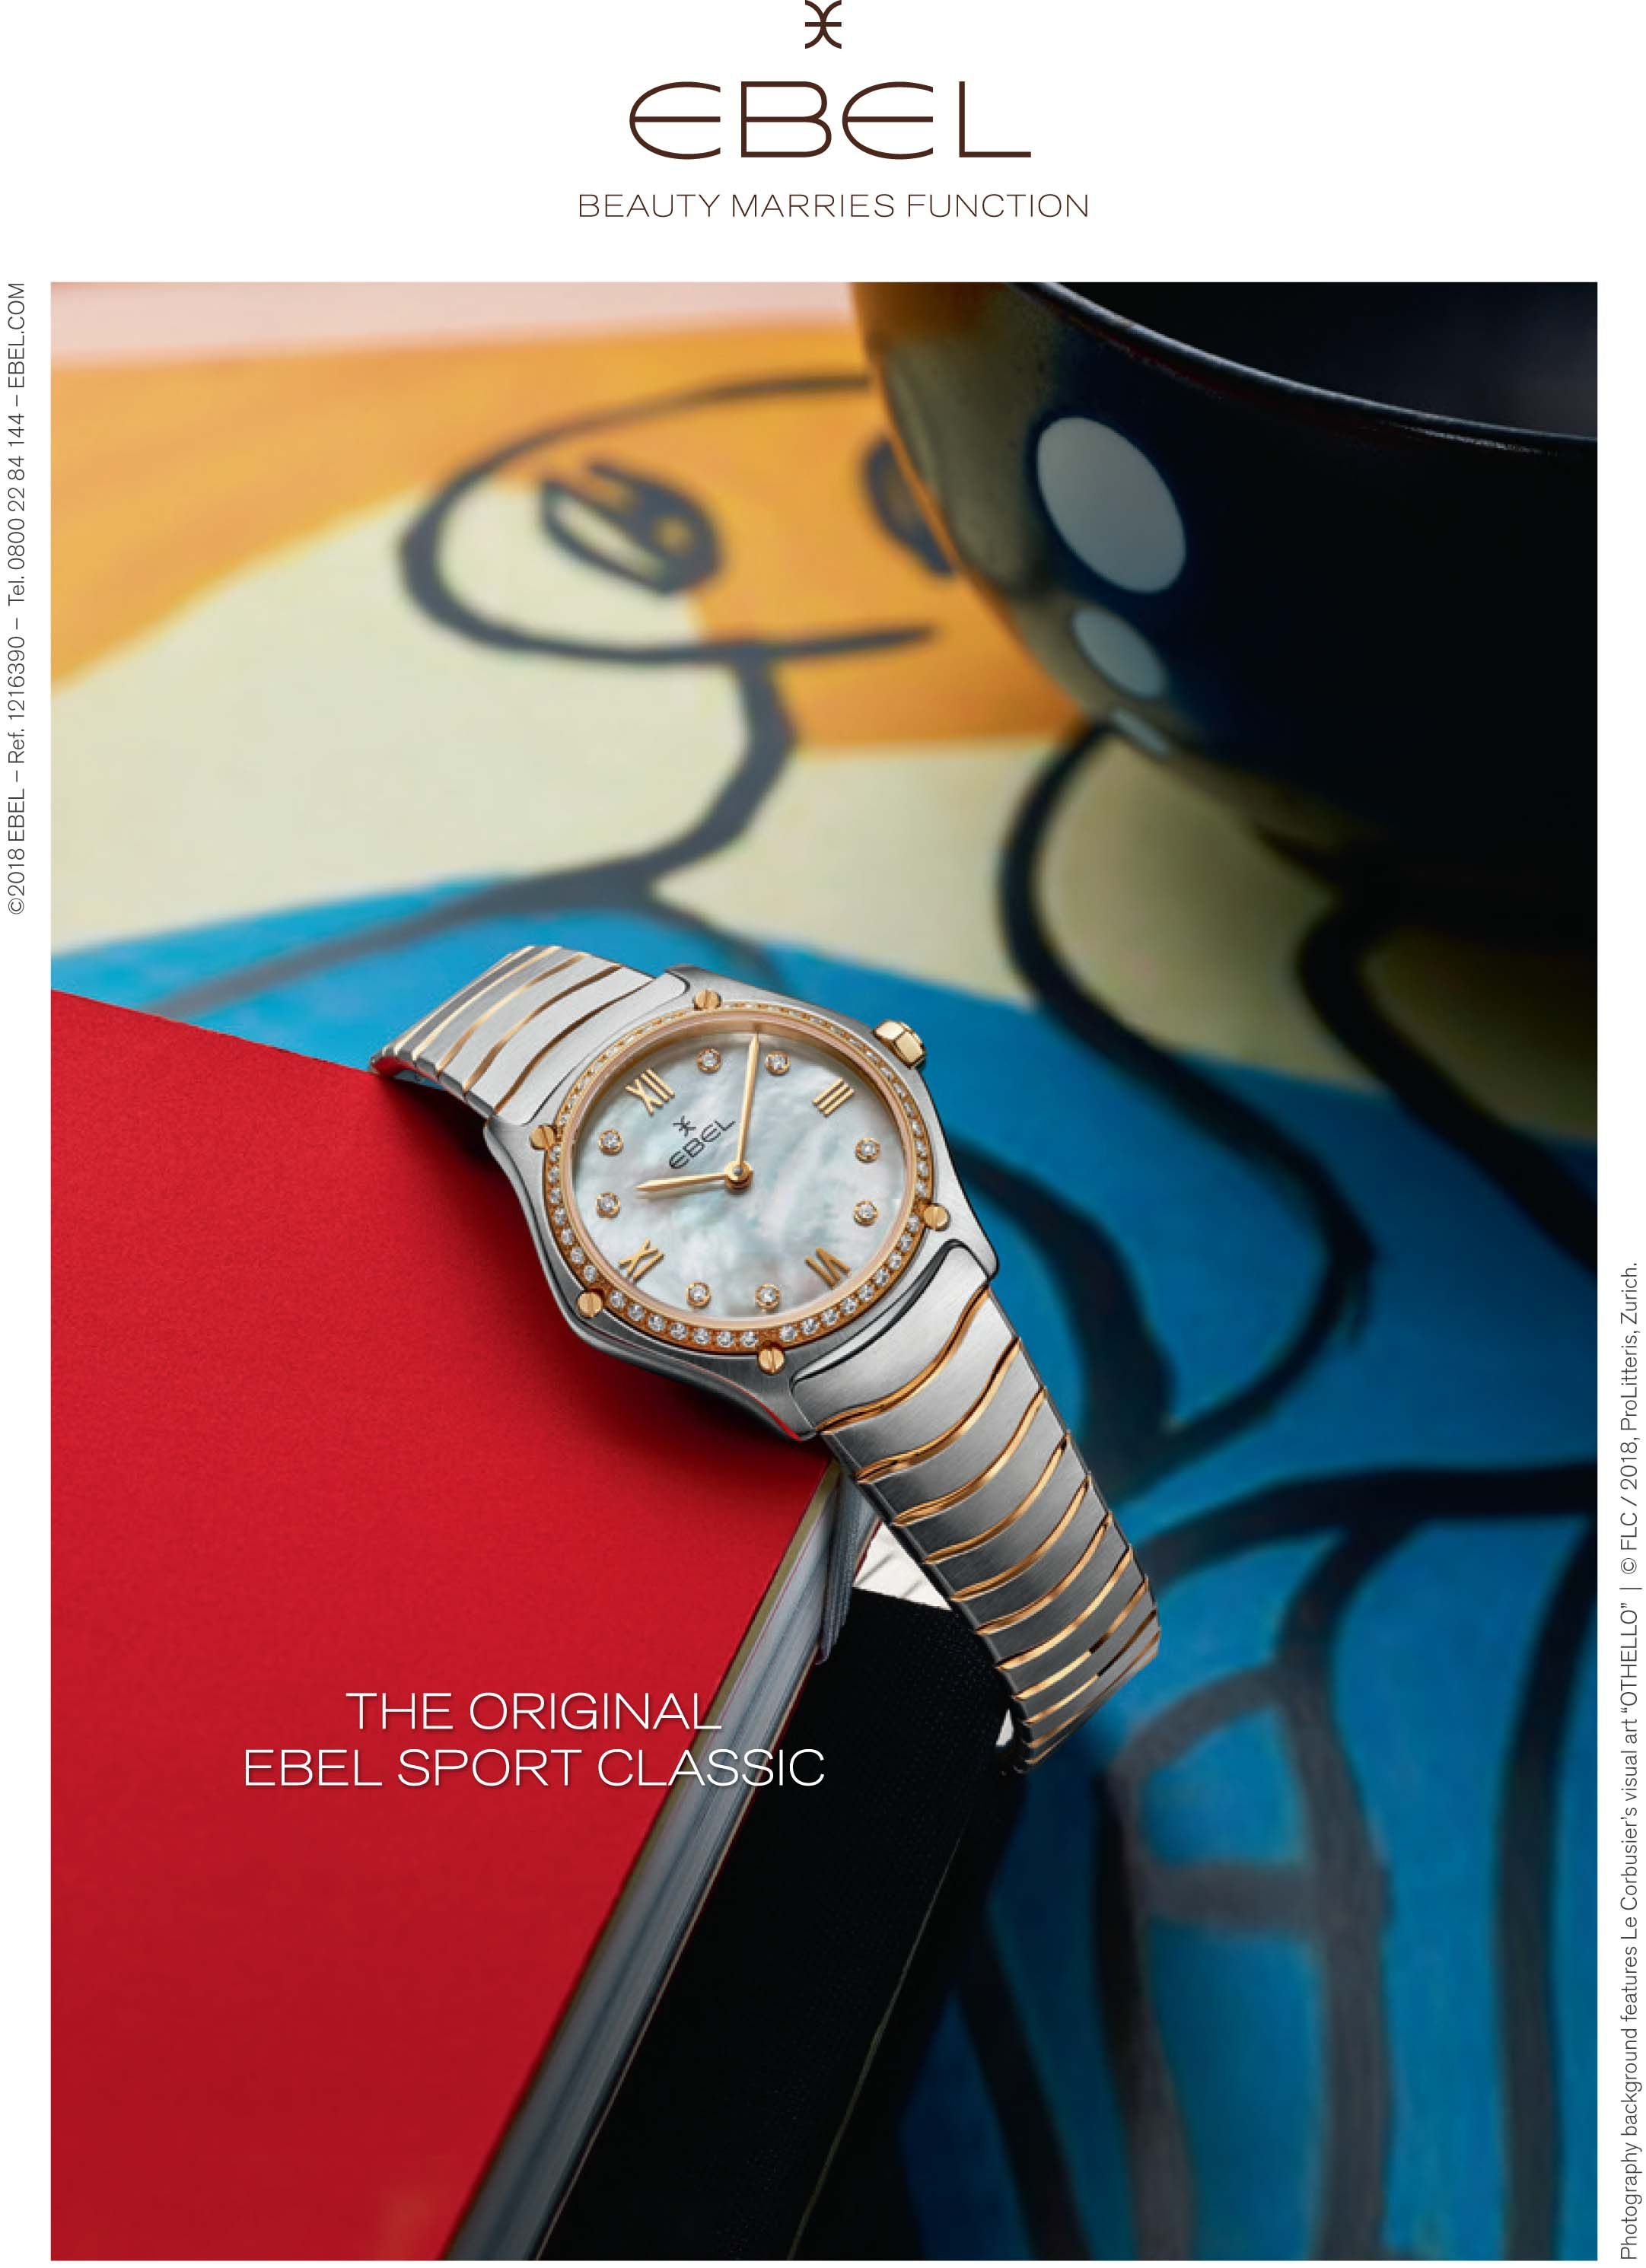 Ebel - Beauty Marries Function